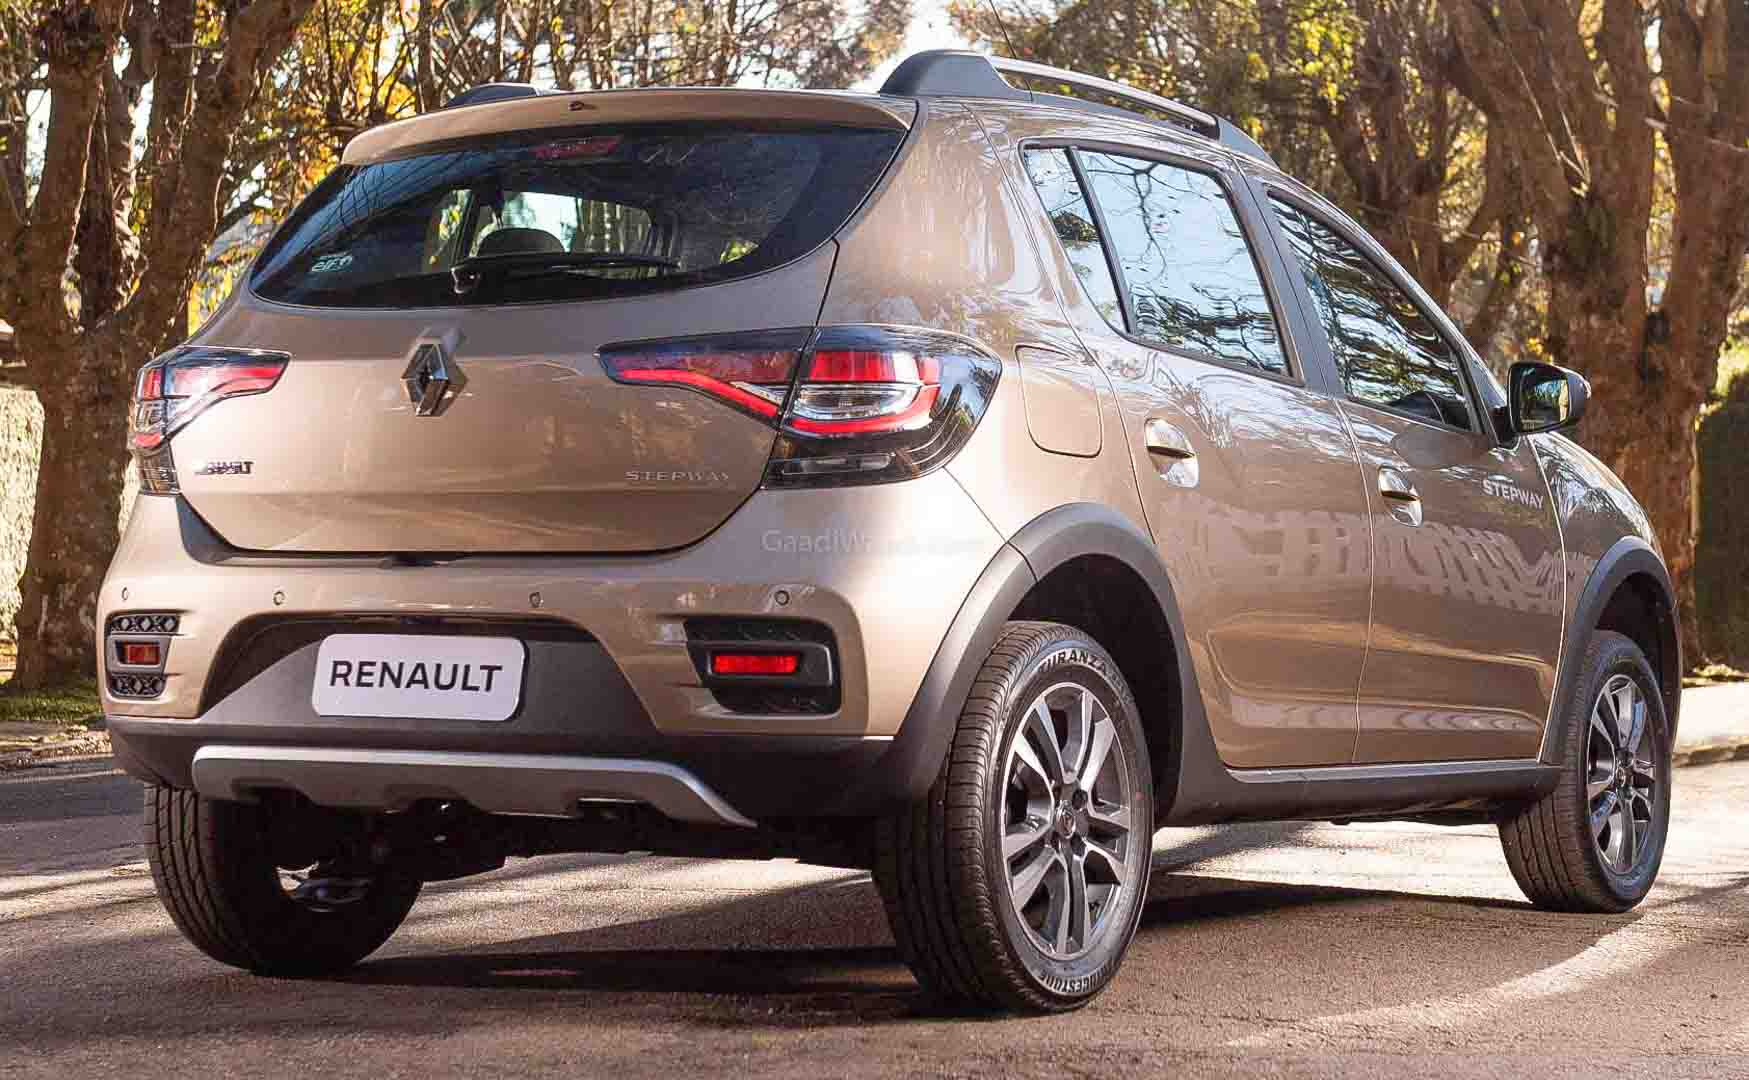 Renault Kiger SUV (Vitara Brezza Rival) Interior Spotted For The First Time